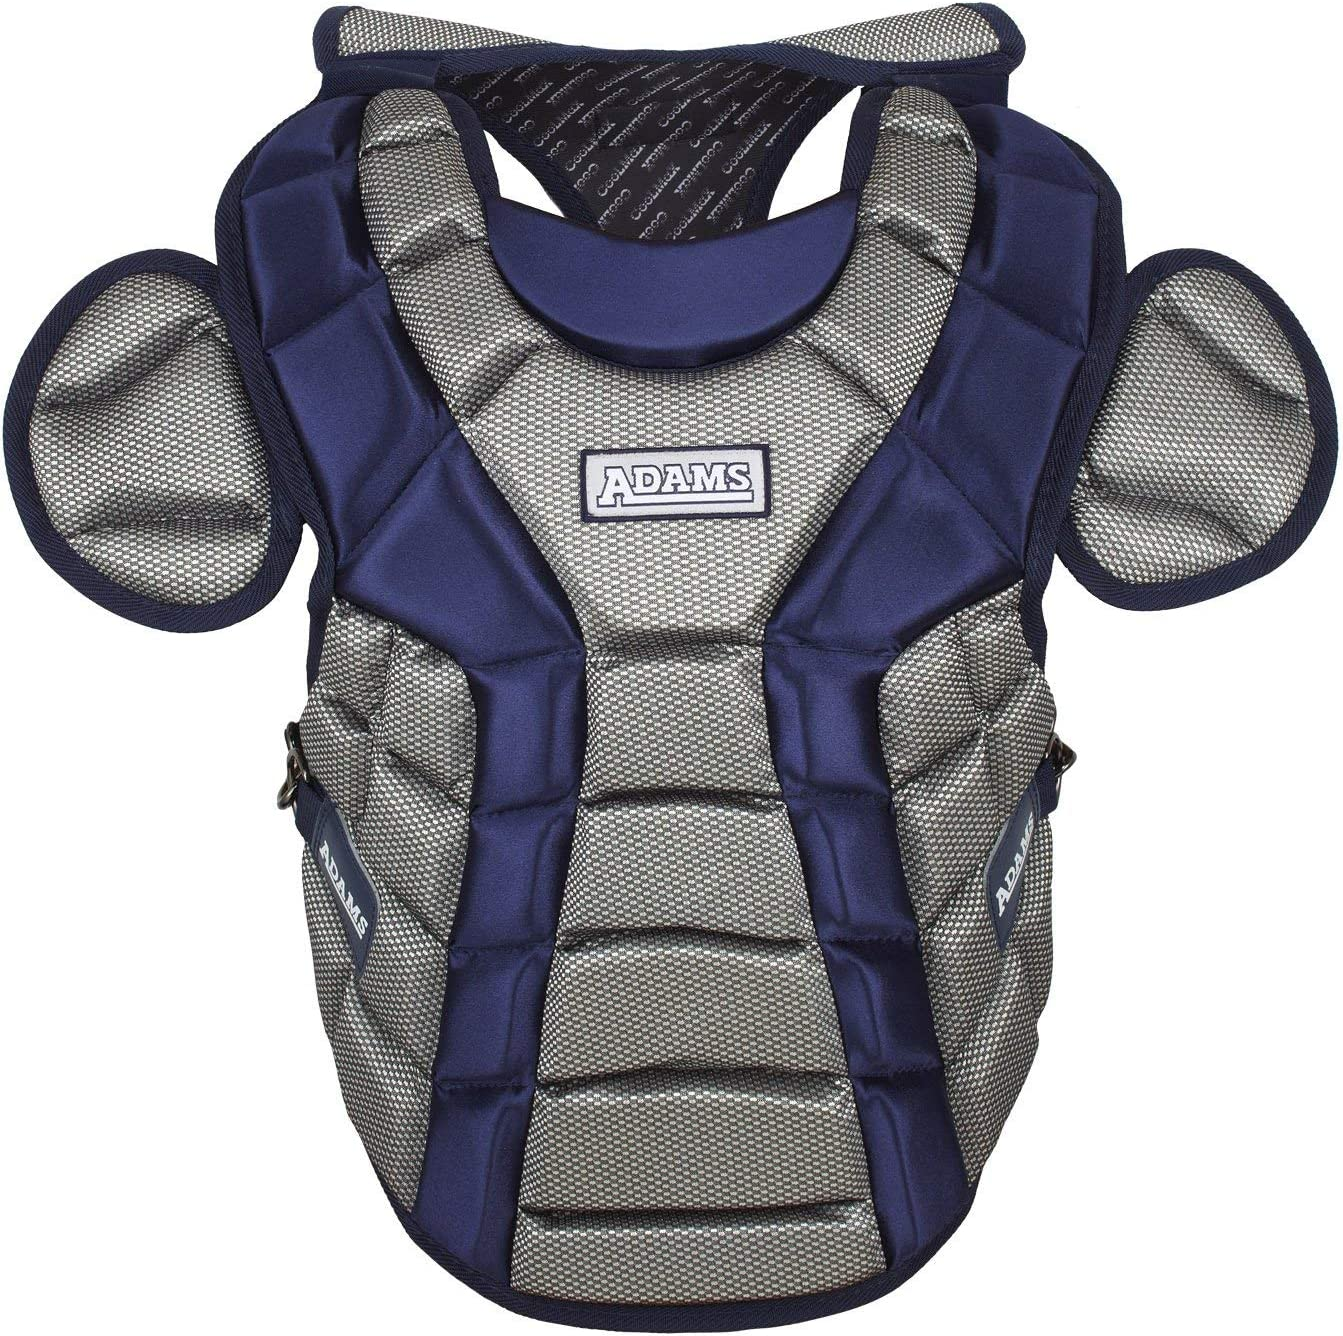 Adams acp-13 Youth Chest Protector with Detachable Tail (13インチ) ネイビー